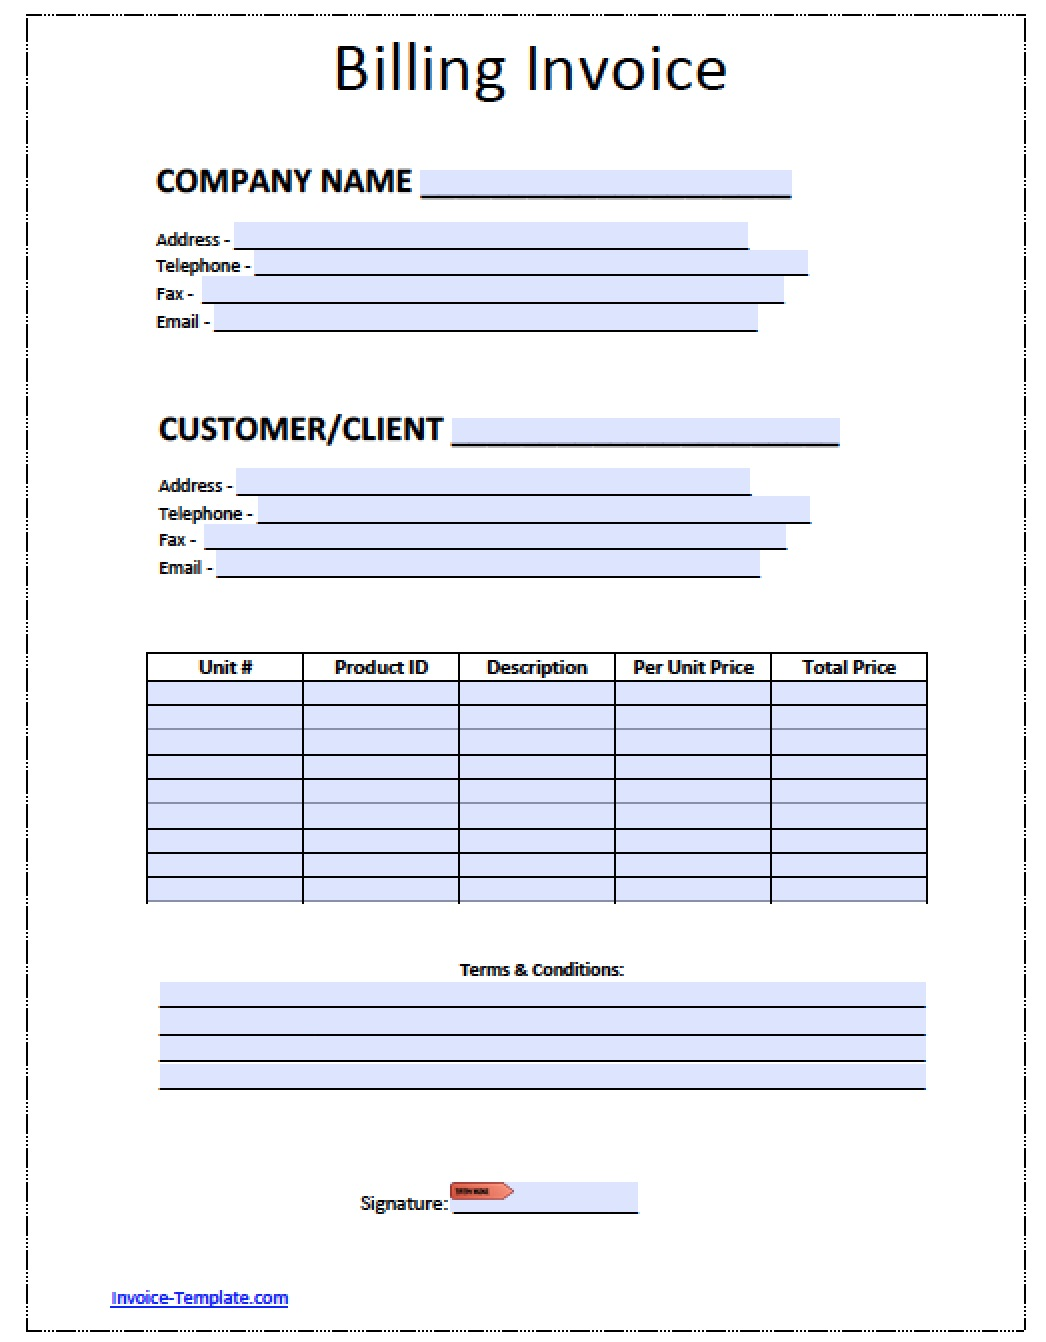 Centralasianshepherdus  Winsome Billing Invoice Invoices Faq U Cloudflare Support Billing  With Engaging Free Billing Invoice Template  Excel  Pdf  Word Doc  Billing With Astounding What Is A Vat Invoice Also Create Invoice Online In Addition Free Invoicing Software And Dj Invoice As Well As Edmunds Invoice Price Additionally Creating An Invoice From Happytomco With Centralasianshepherdus  Engaging Billing Invoice Invoices Faq U Cloudflare Support Billing  With Astounding Free Billing Invoice Template  Excel  Pdf  Word Doc  Billing And Winsome What Is A Vat Invoice Also Create Invoice Online In Addition Free Invoicing Software From Happytomco